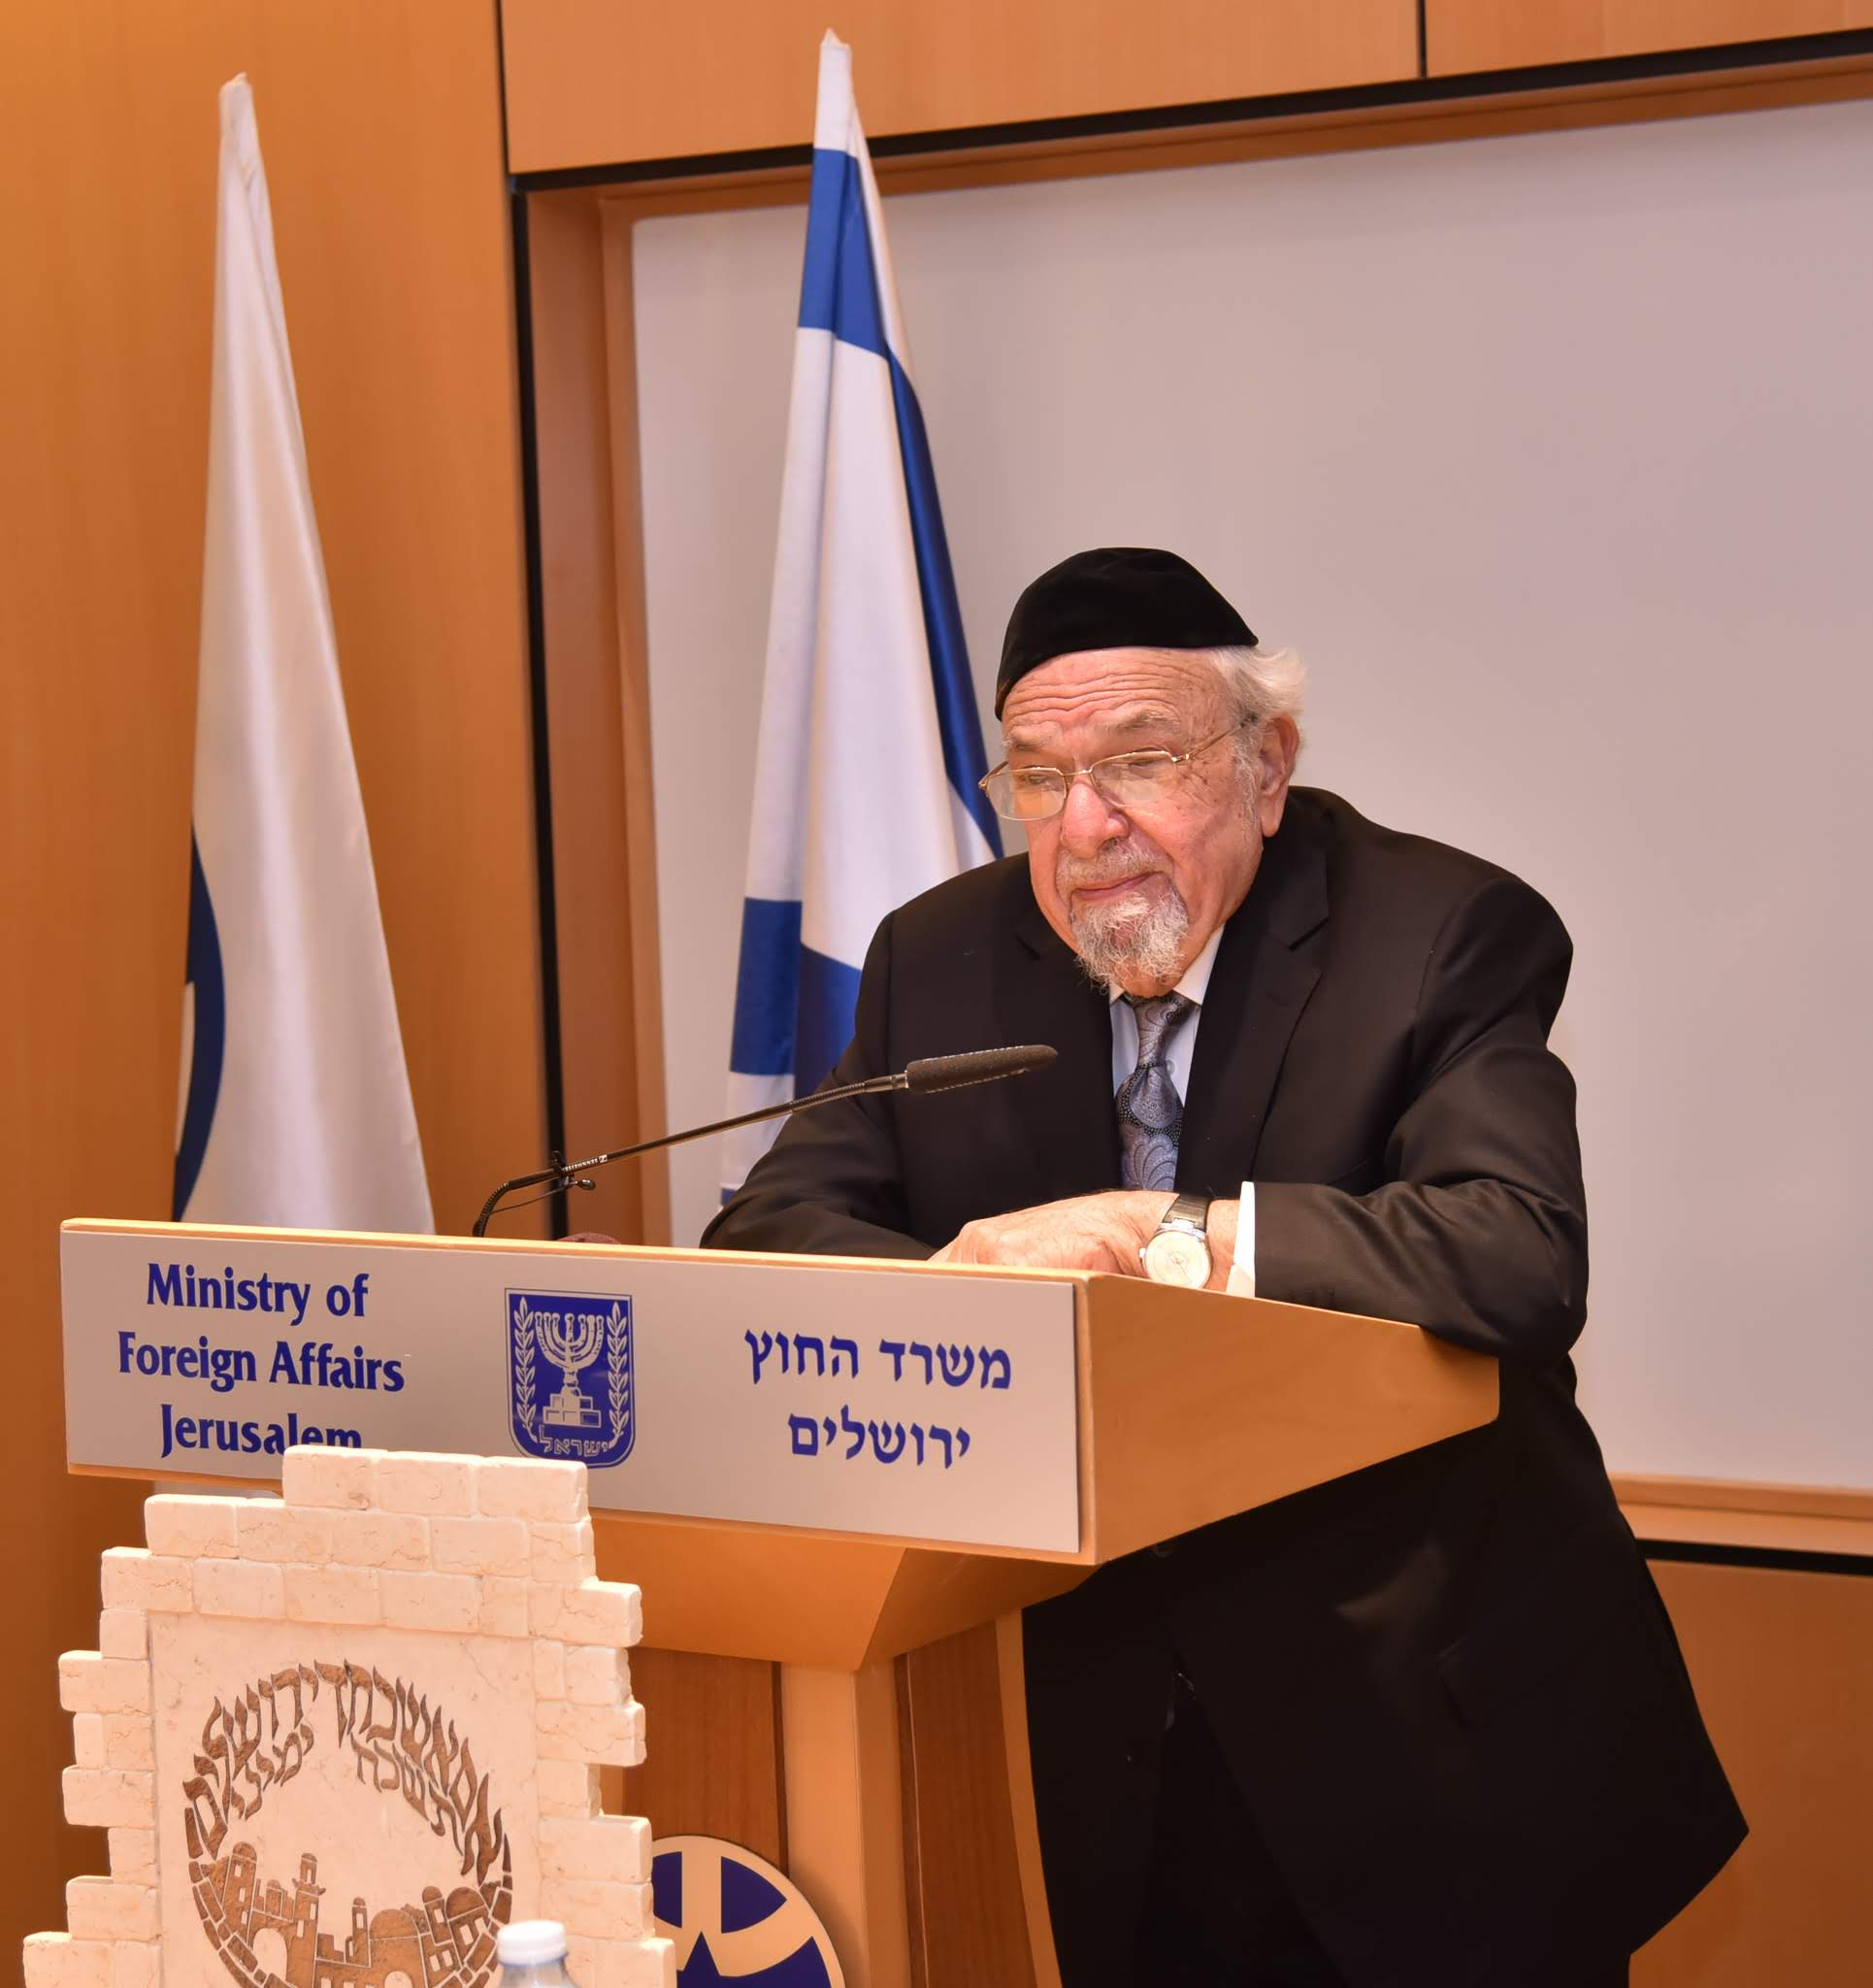 Rabbi Scheinberg speaking